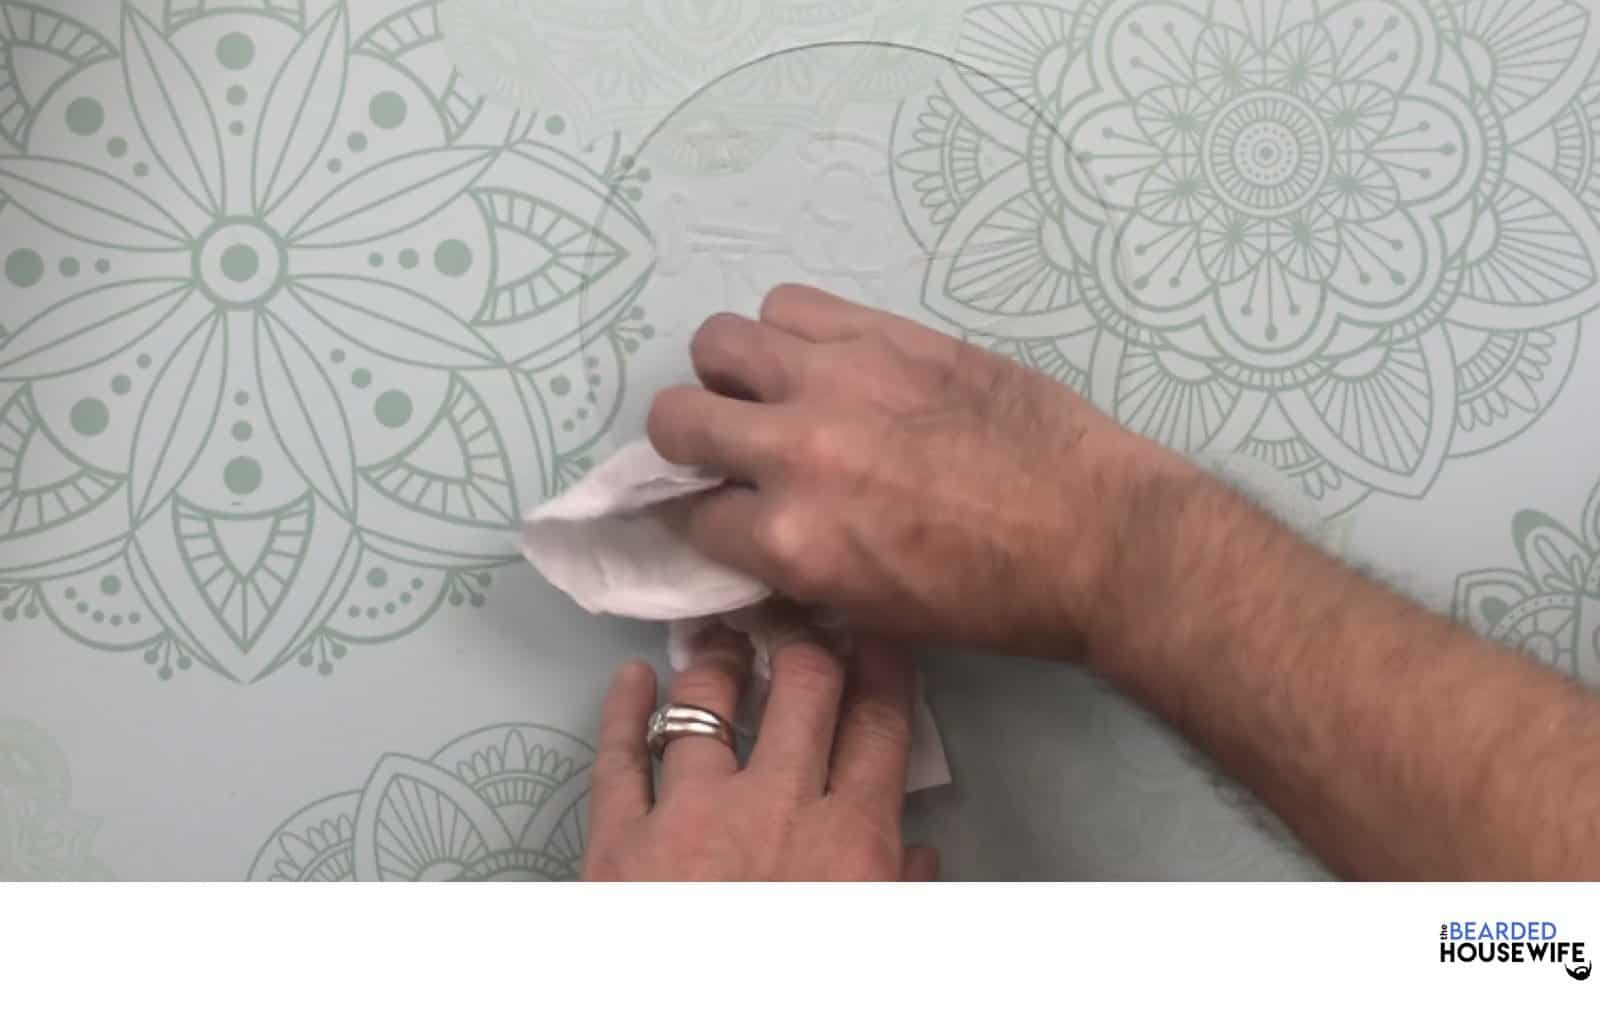 clean your acrylic to make sure it is free from any fingerprints or dust